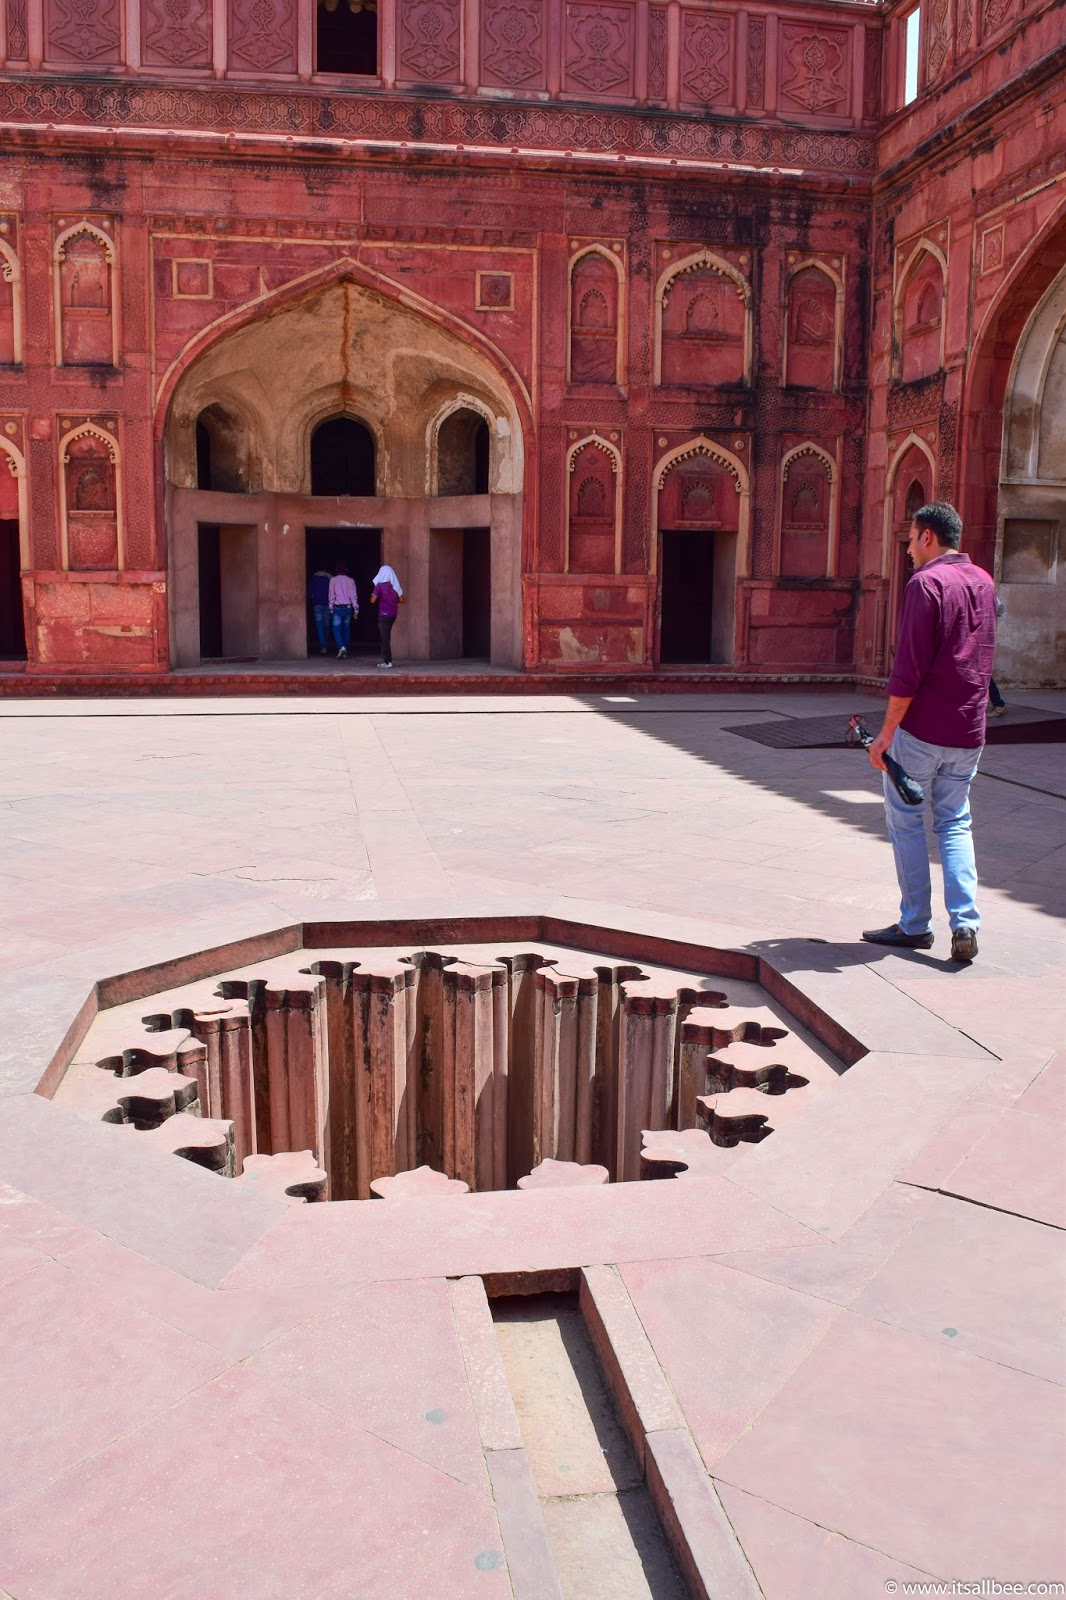 Visiting of The Agra Fort - Photo by Bianca Malata - www.itsallbee.com